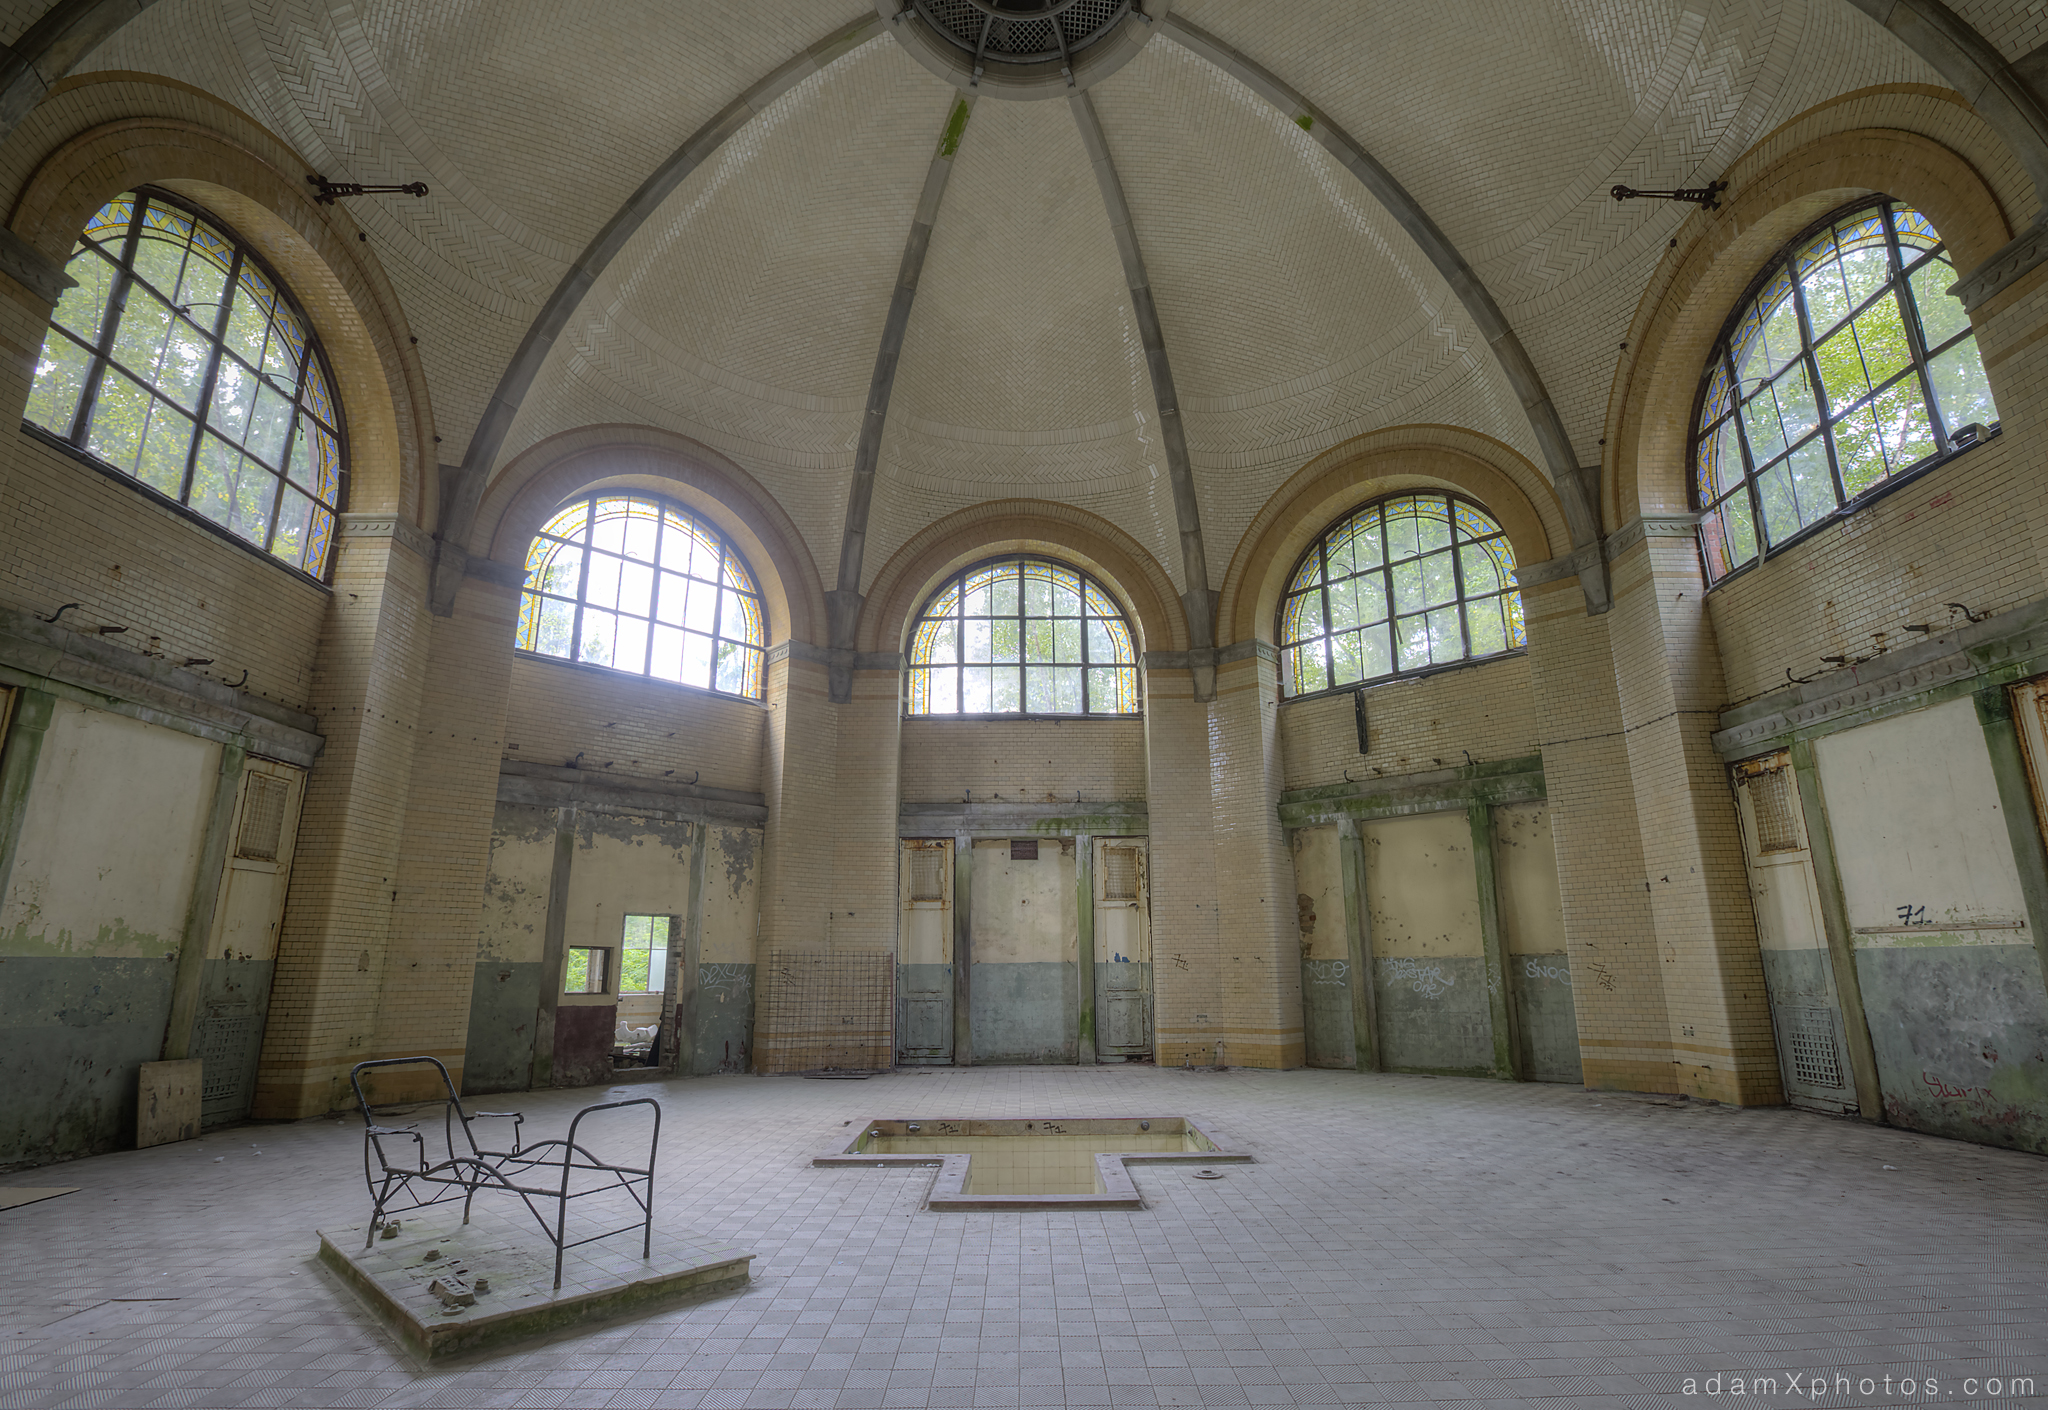 Adam X Urbex Beelitz Heilstatten Germany Urban Exploration Mens Men's Bathhouse Bath House Hospital Decay Lost Abandoned Hidden tiles